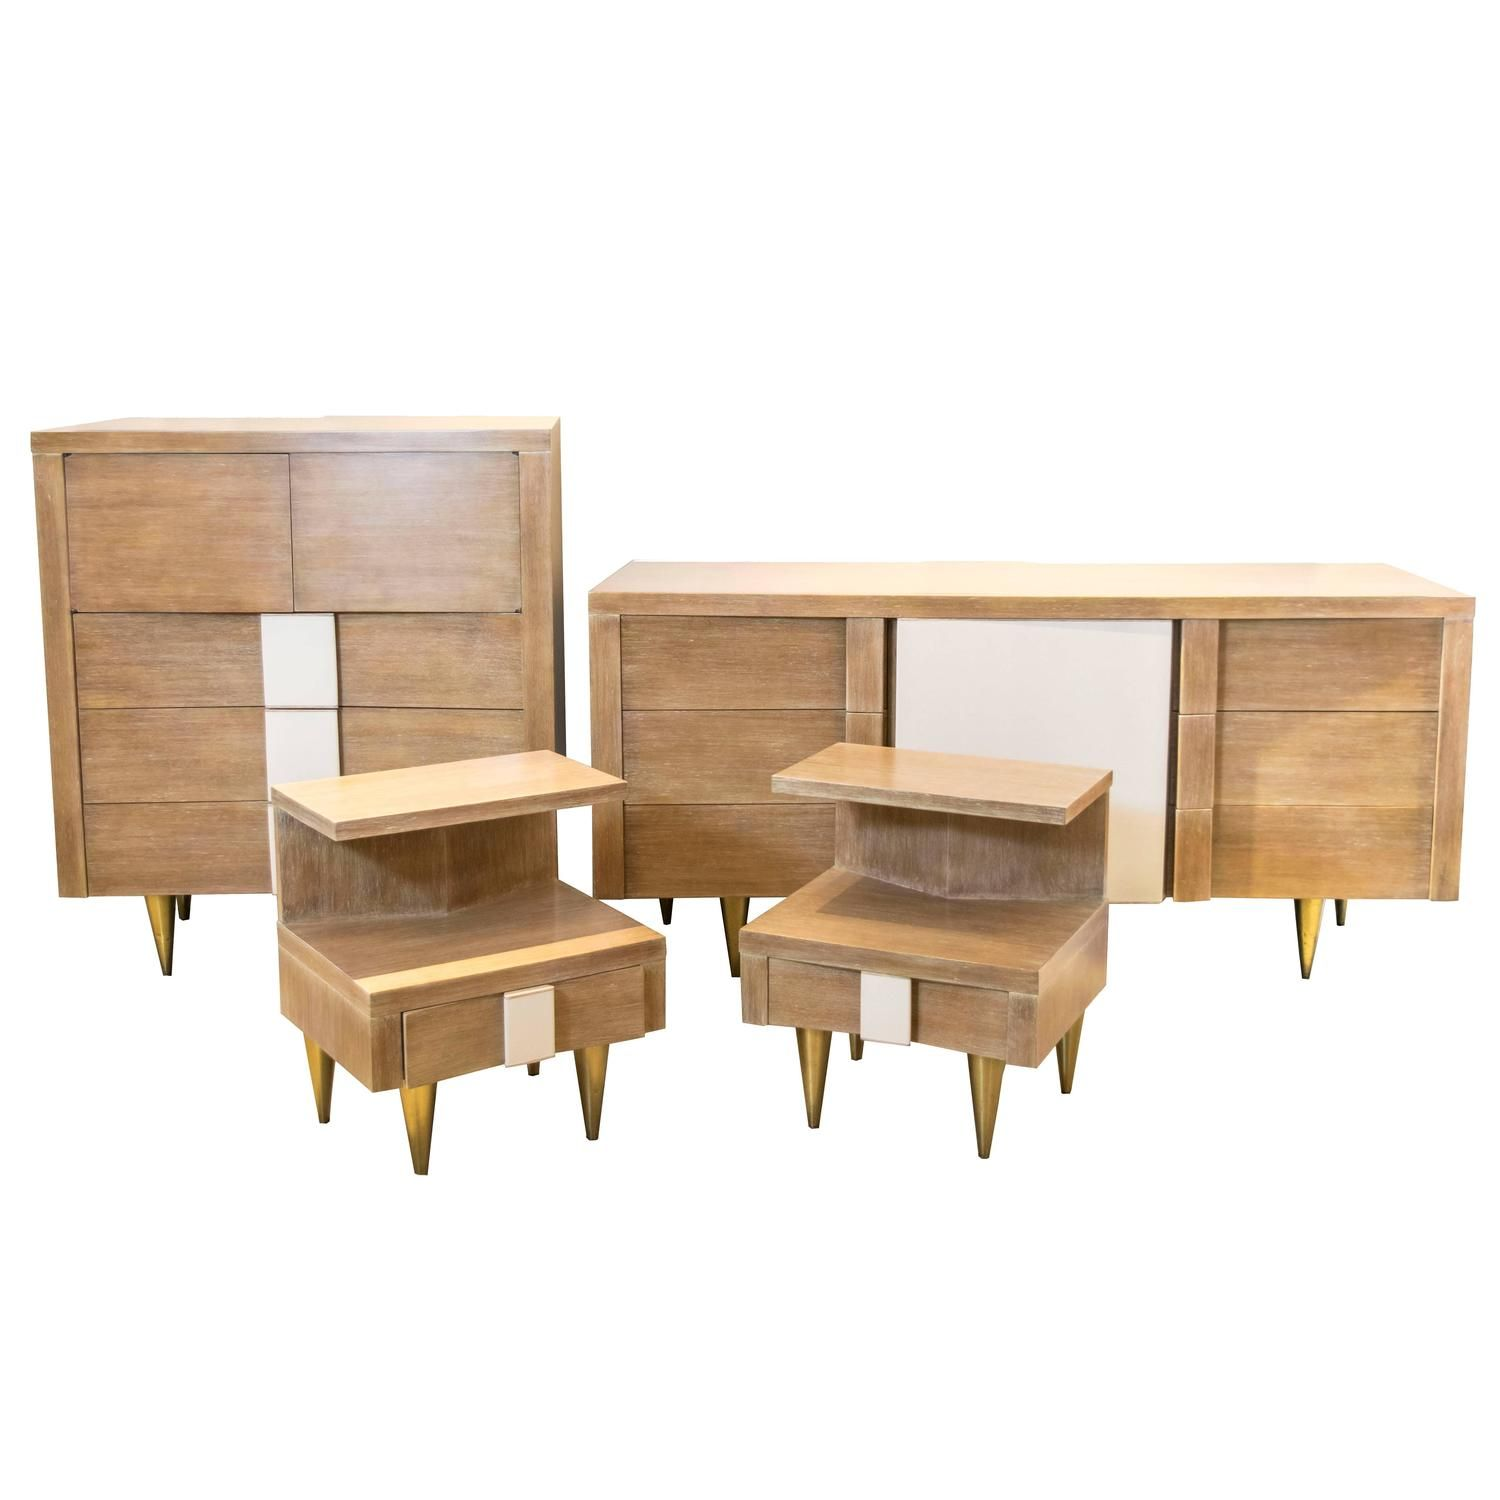 Vanleigh Four Piece Bedroom Set In The Manner Of Gio Ponti From